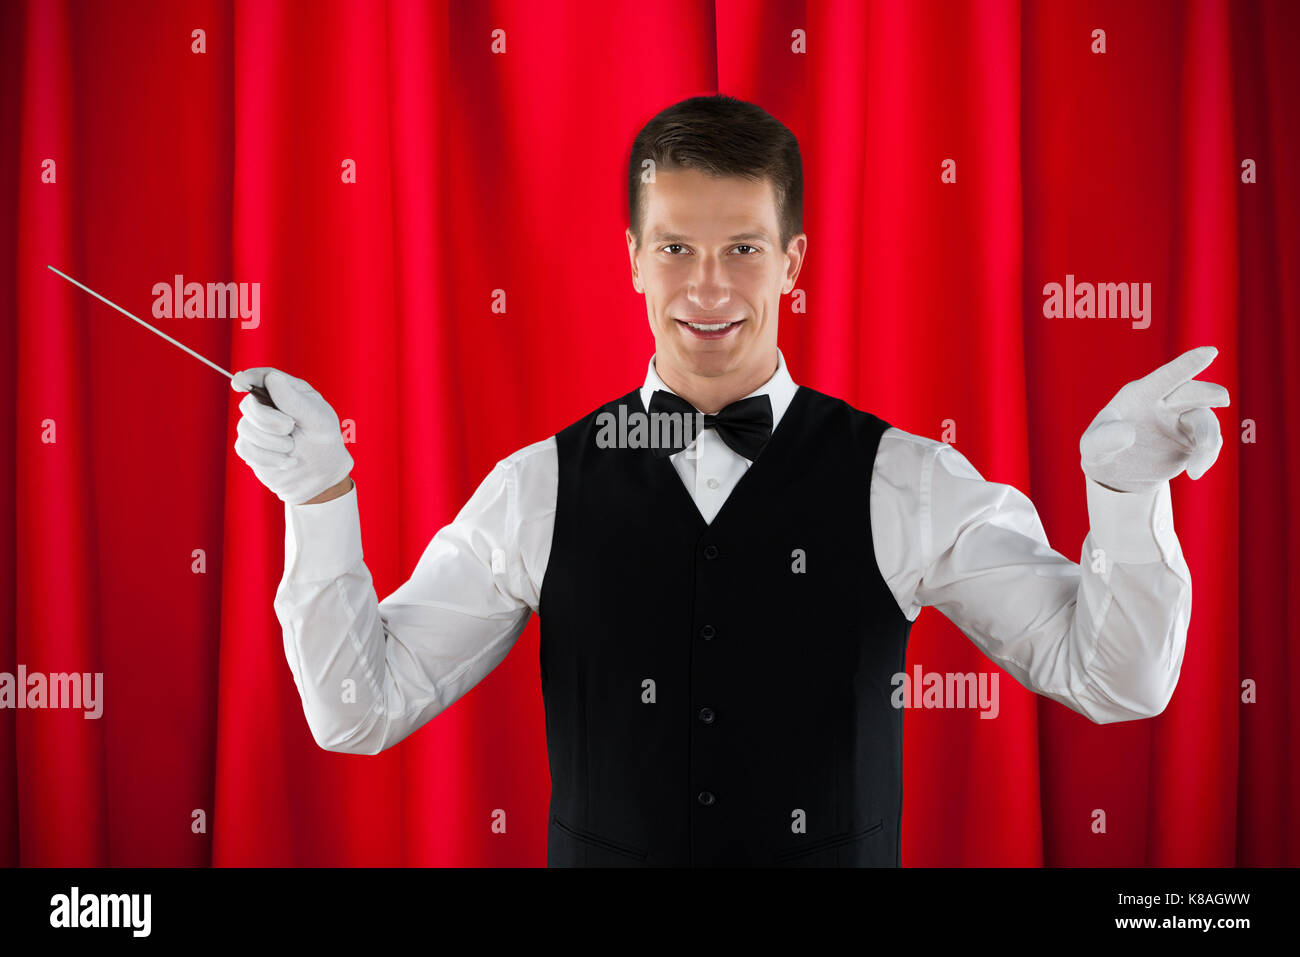 Male Orchestra Conductor Holding Baton Over Red Curtain - Stock Image